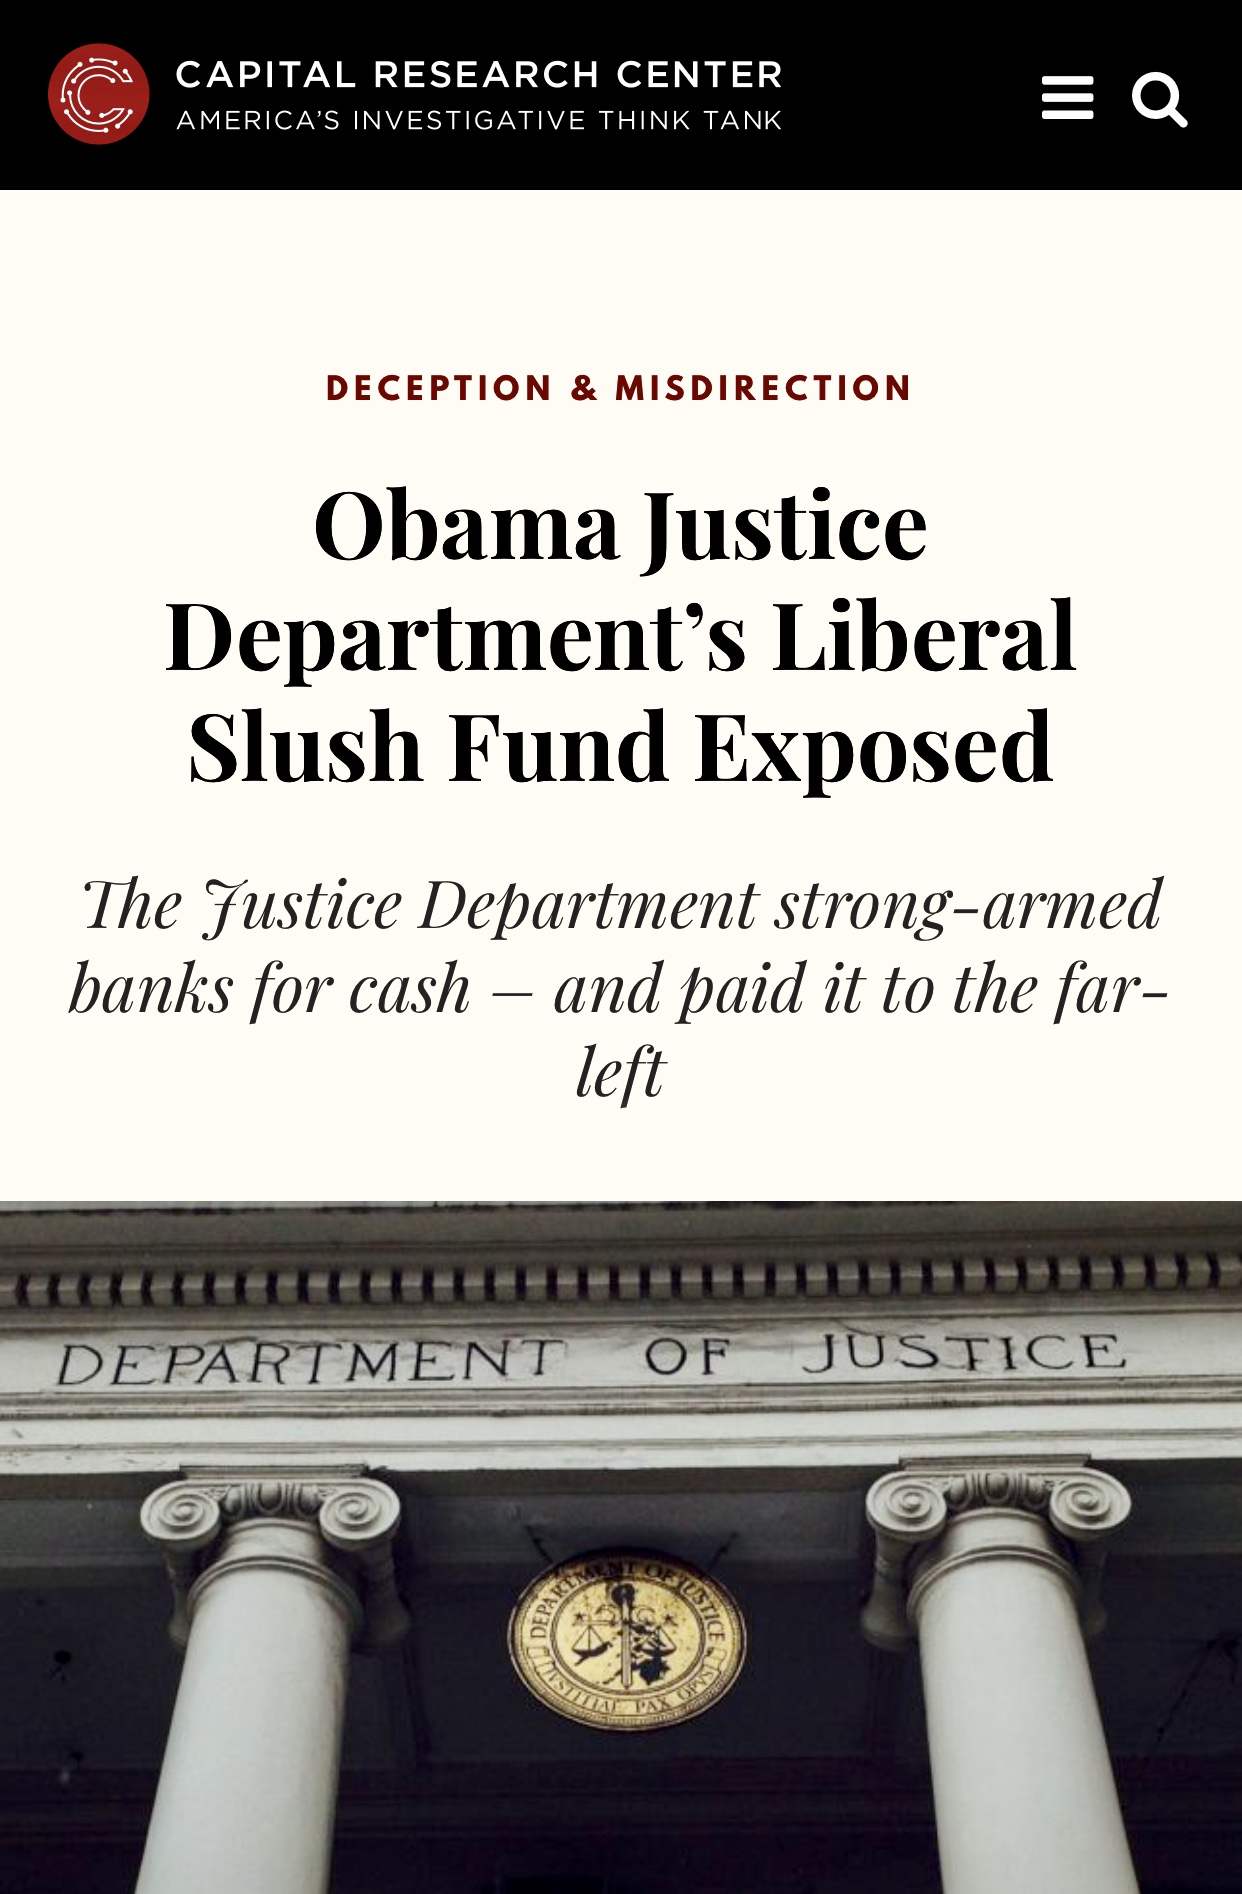 Obama Justice Department's Liberal Slush Fund Exposed – Capital Research Center